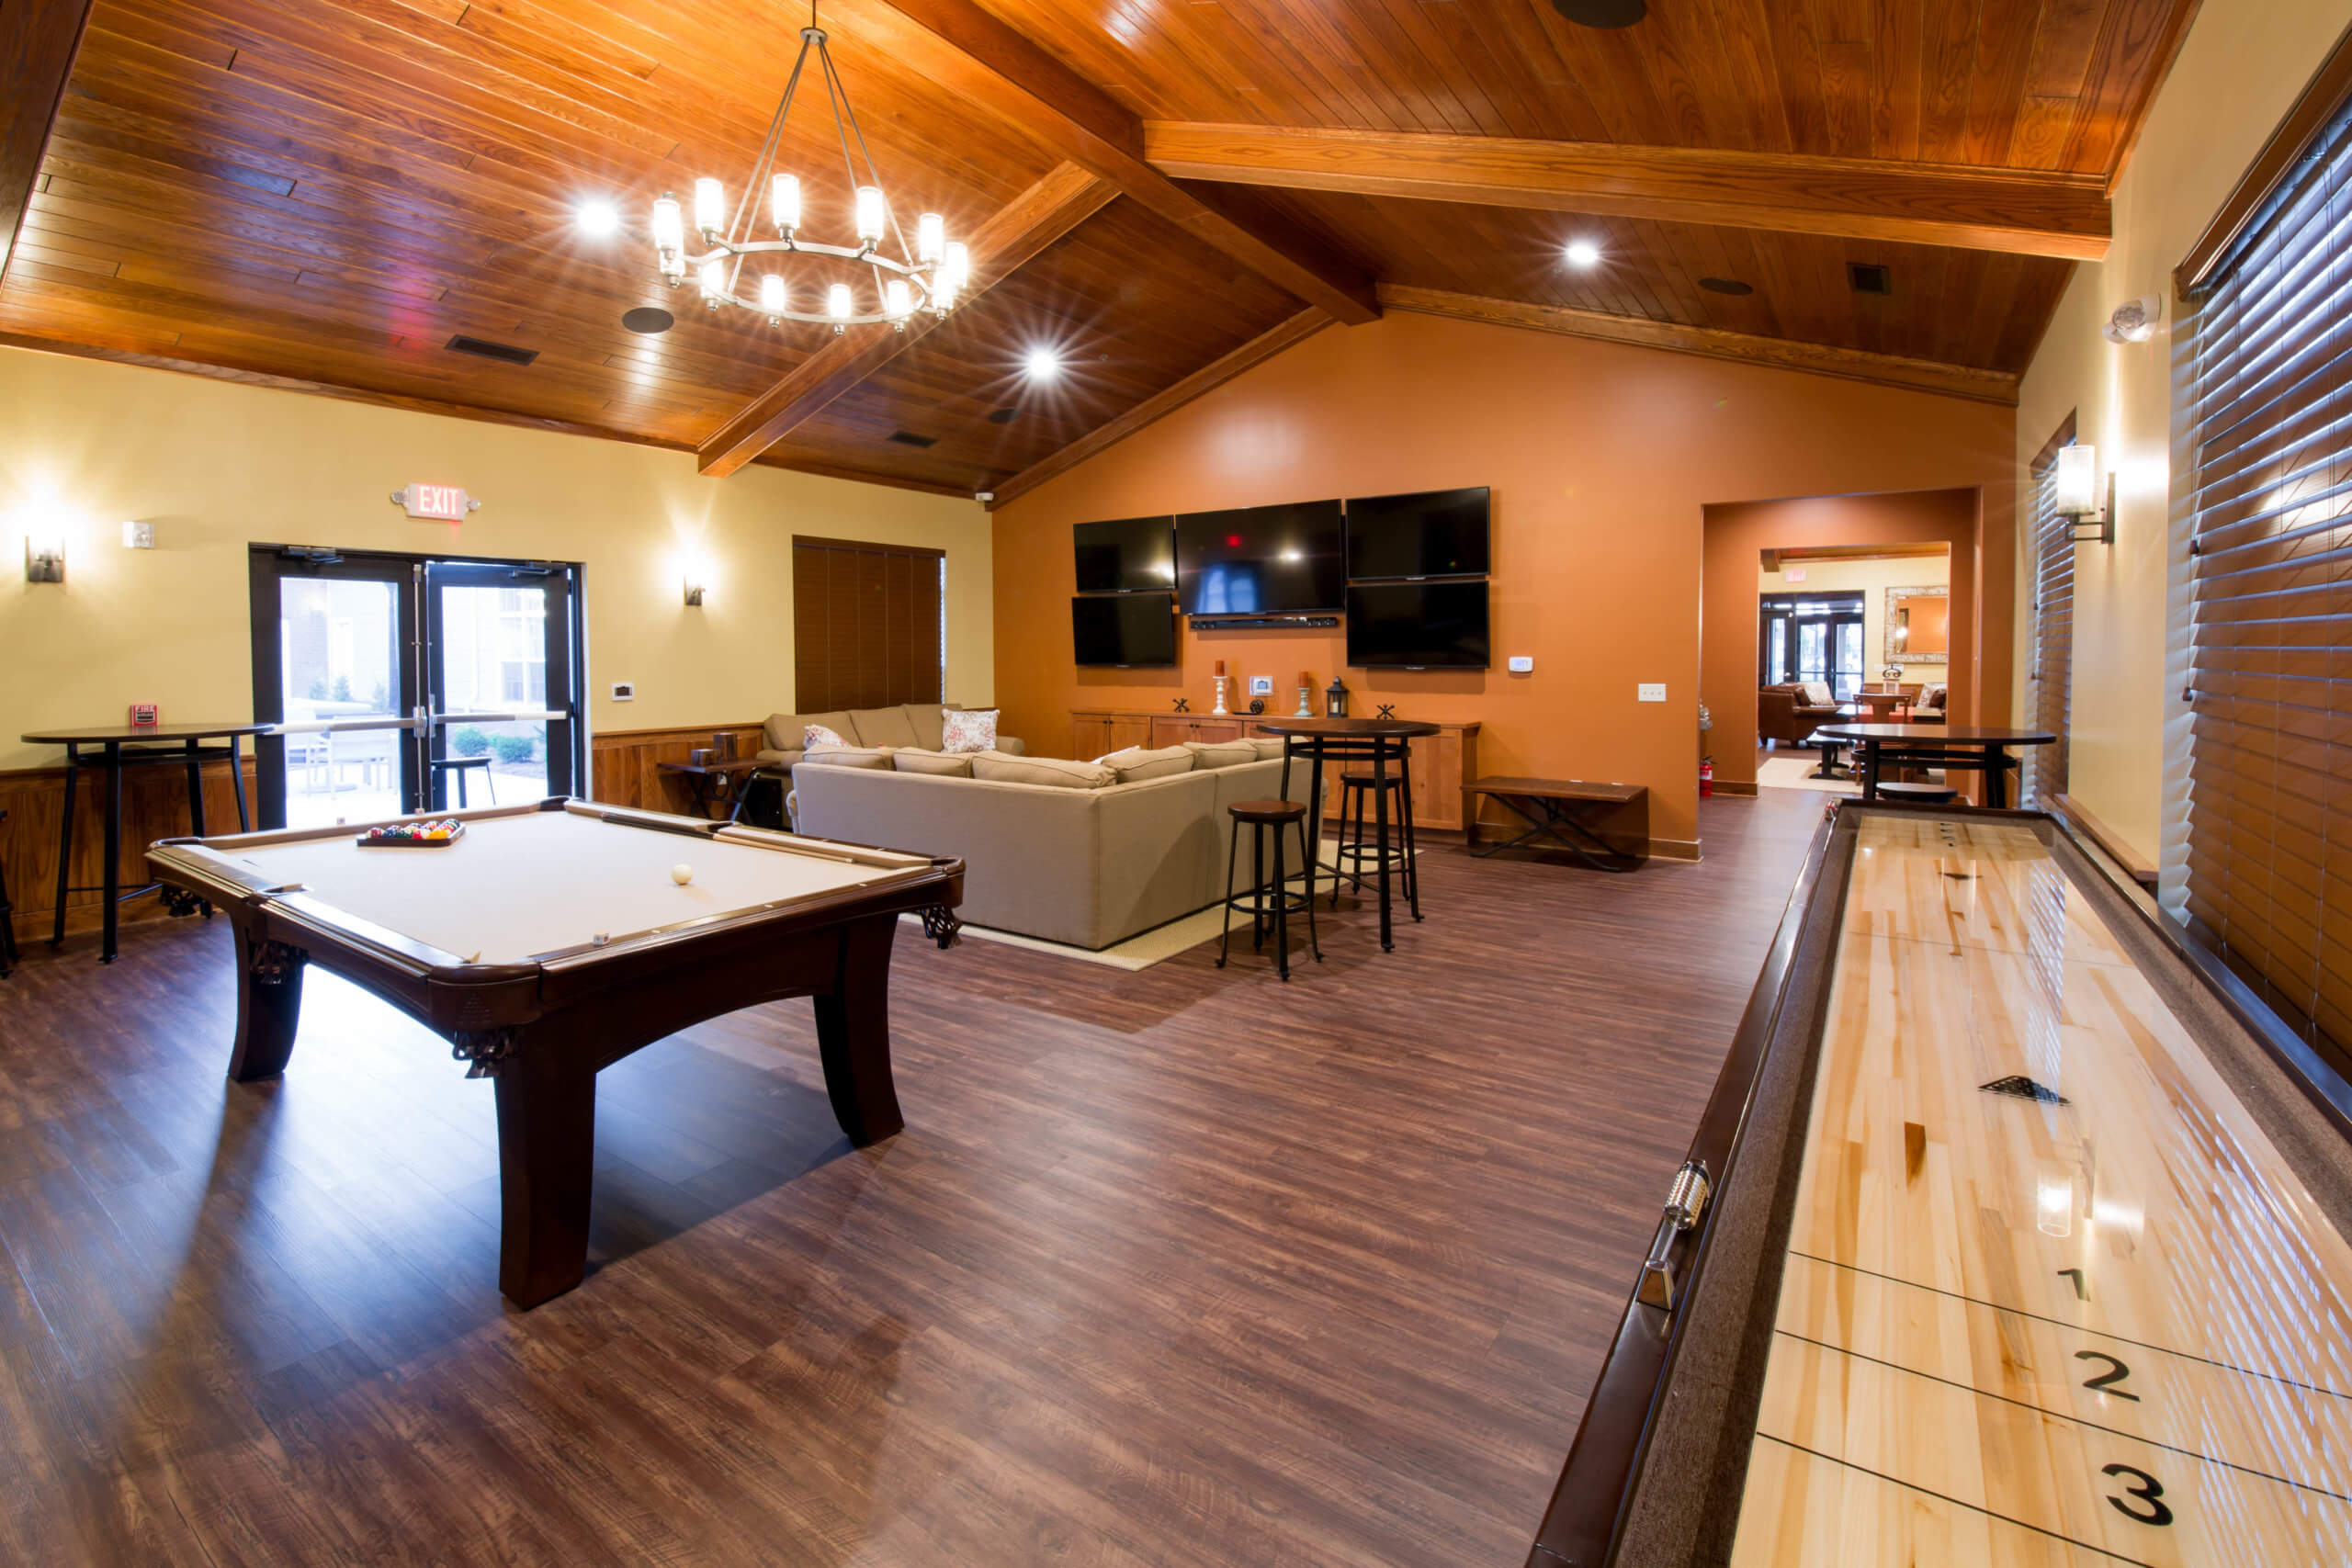 clubhouse interior with a pool table and shuffle board